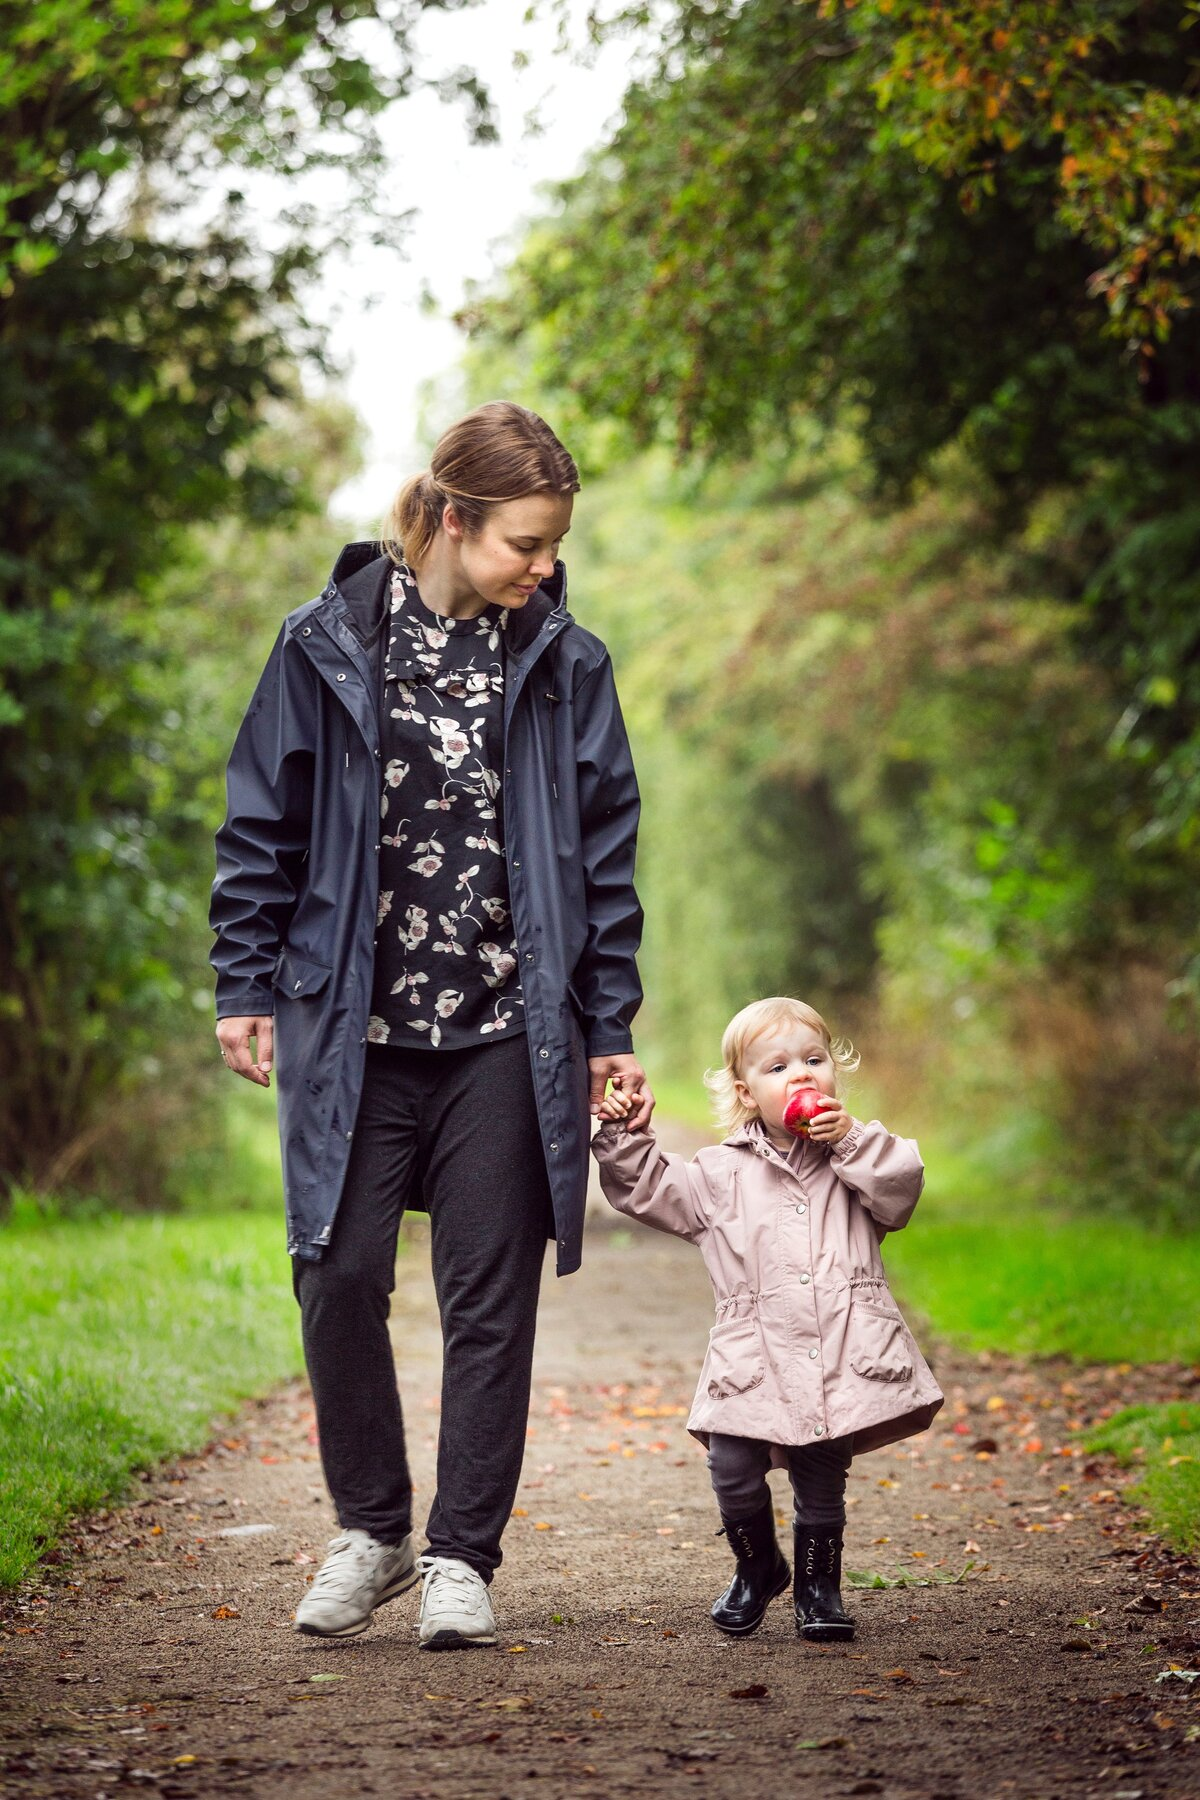 woman-walking-with-child-on-pathway-2505132